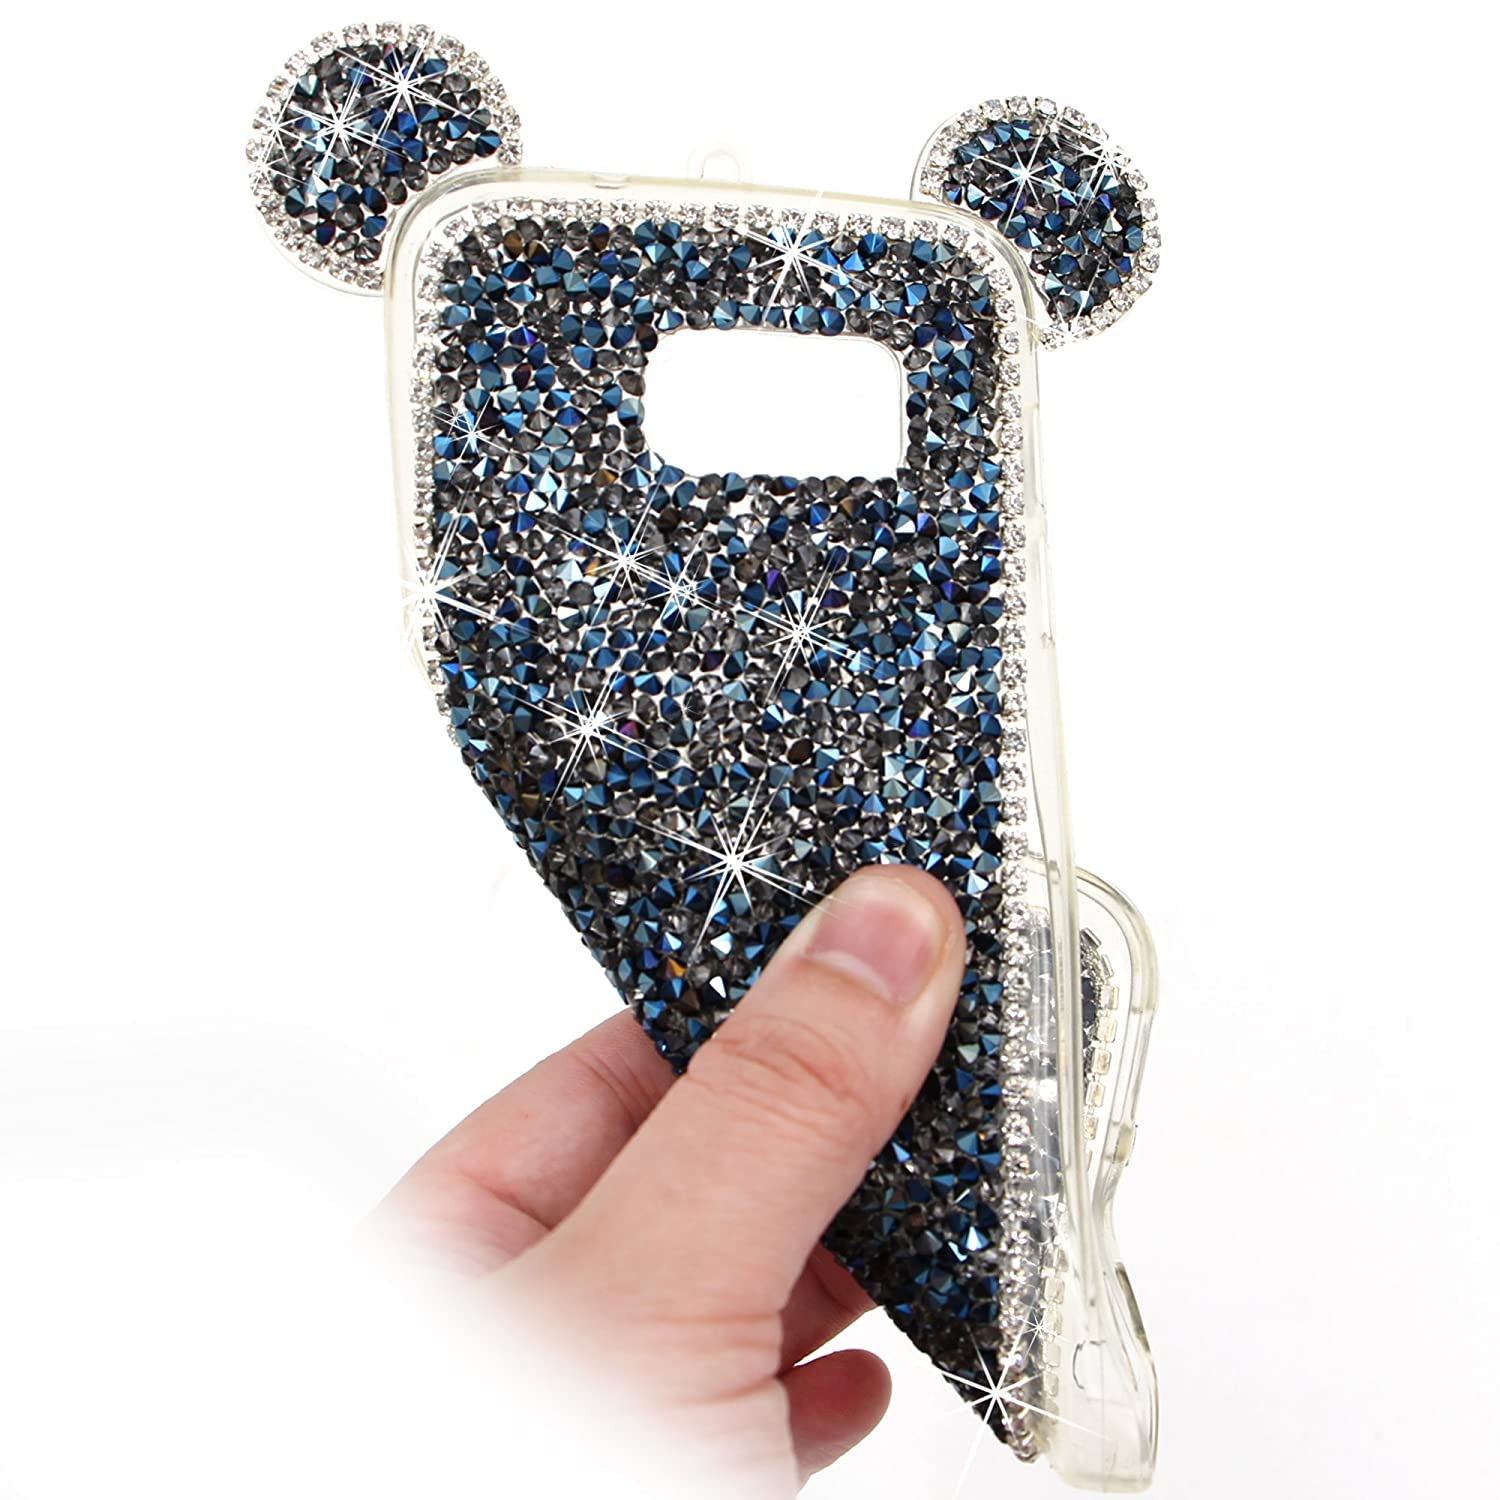 Bling Diamond 3D Case for Samsung Galaxy S8, Girlyard Mouse Ears Case Glitter Rhinestone Soft Silicone TPU Premium Cartoon Back Cover with Neck Strap Lanyard-- White